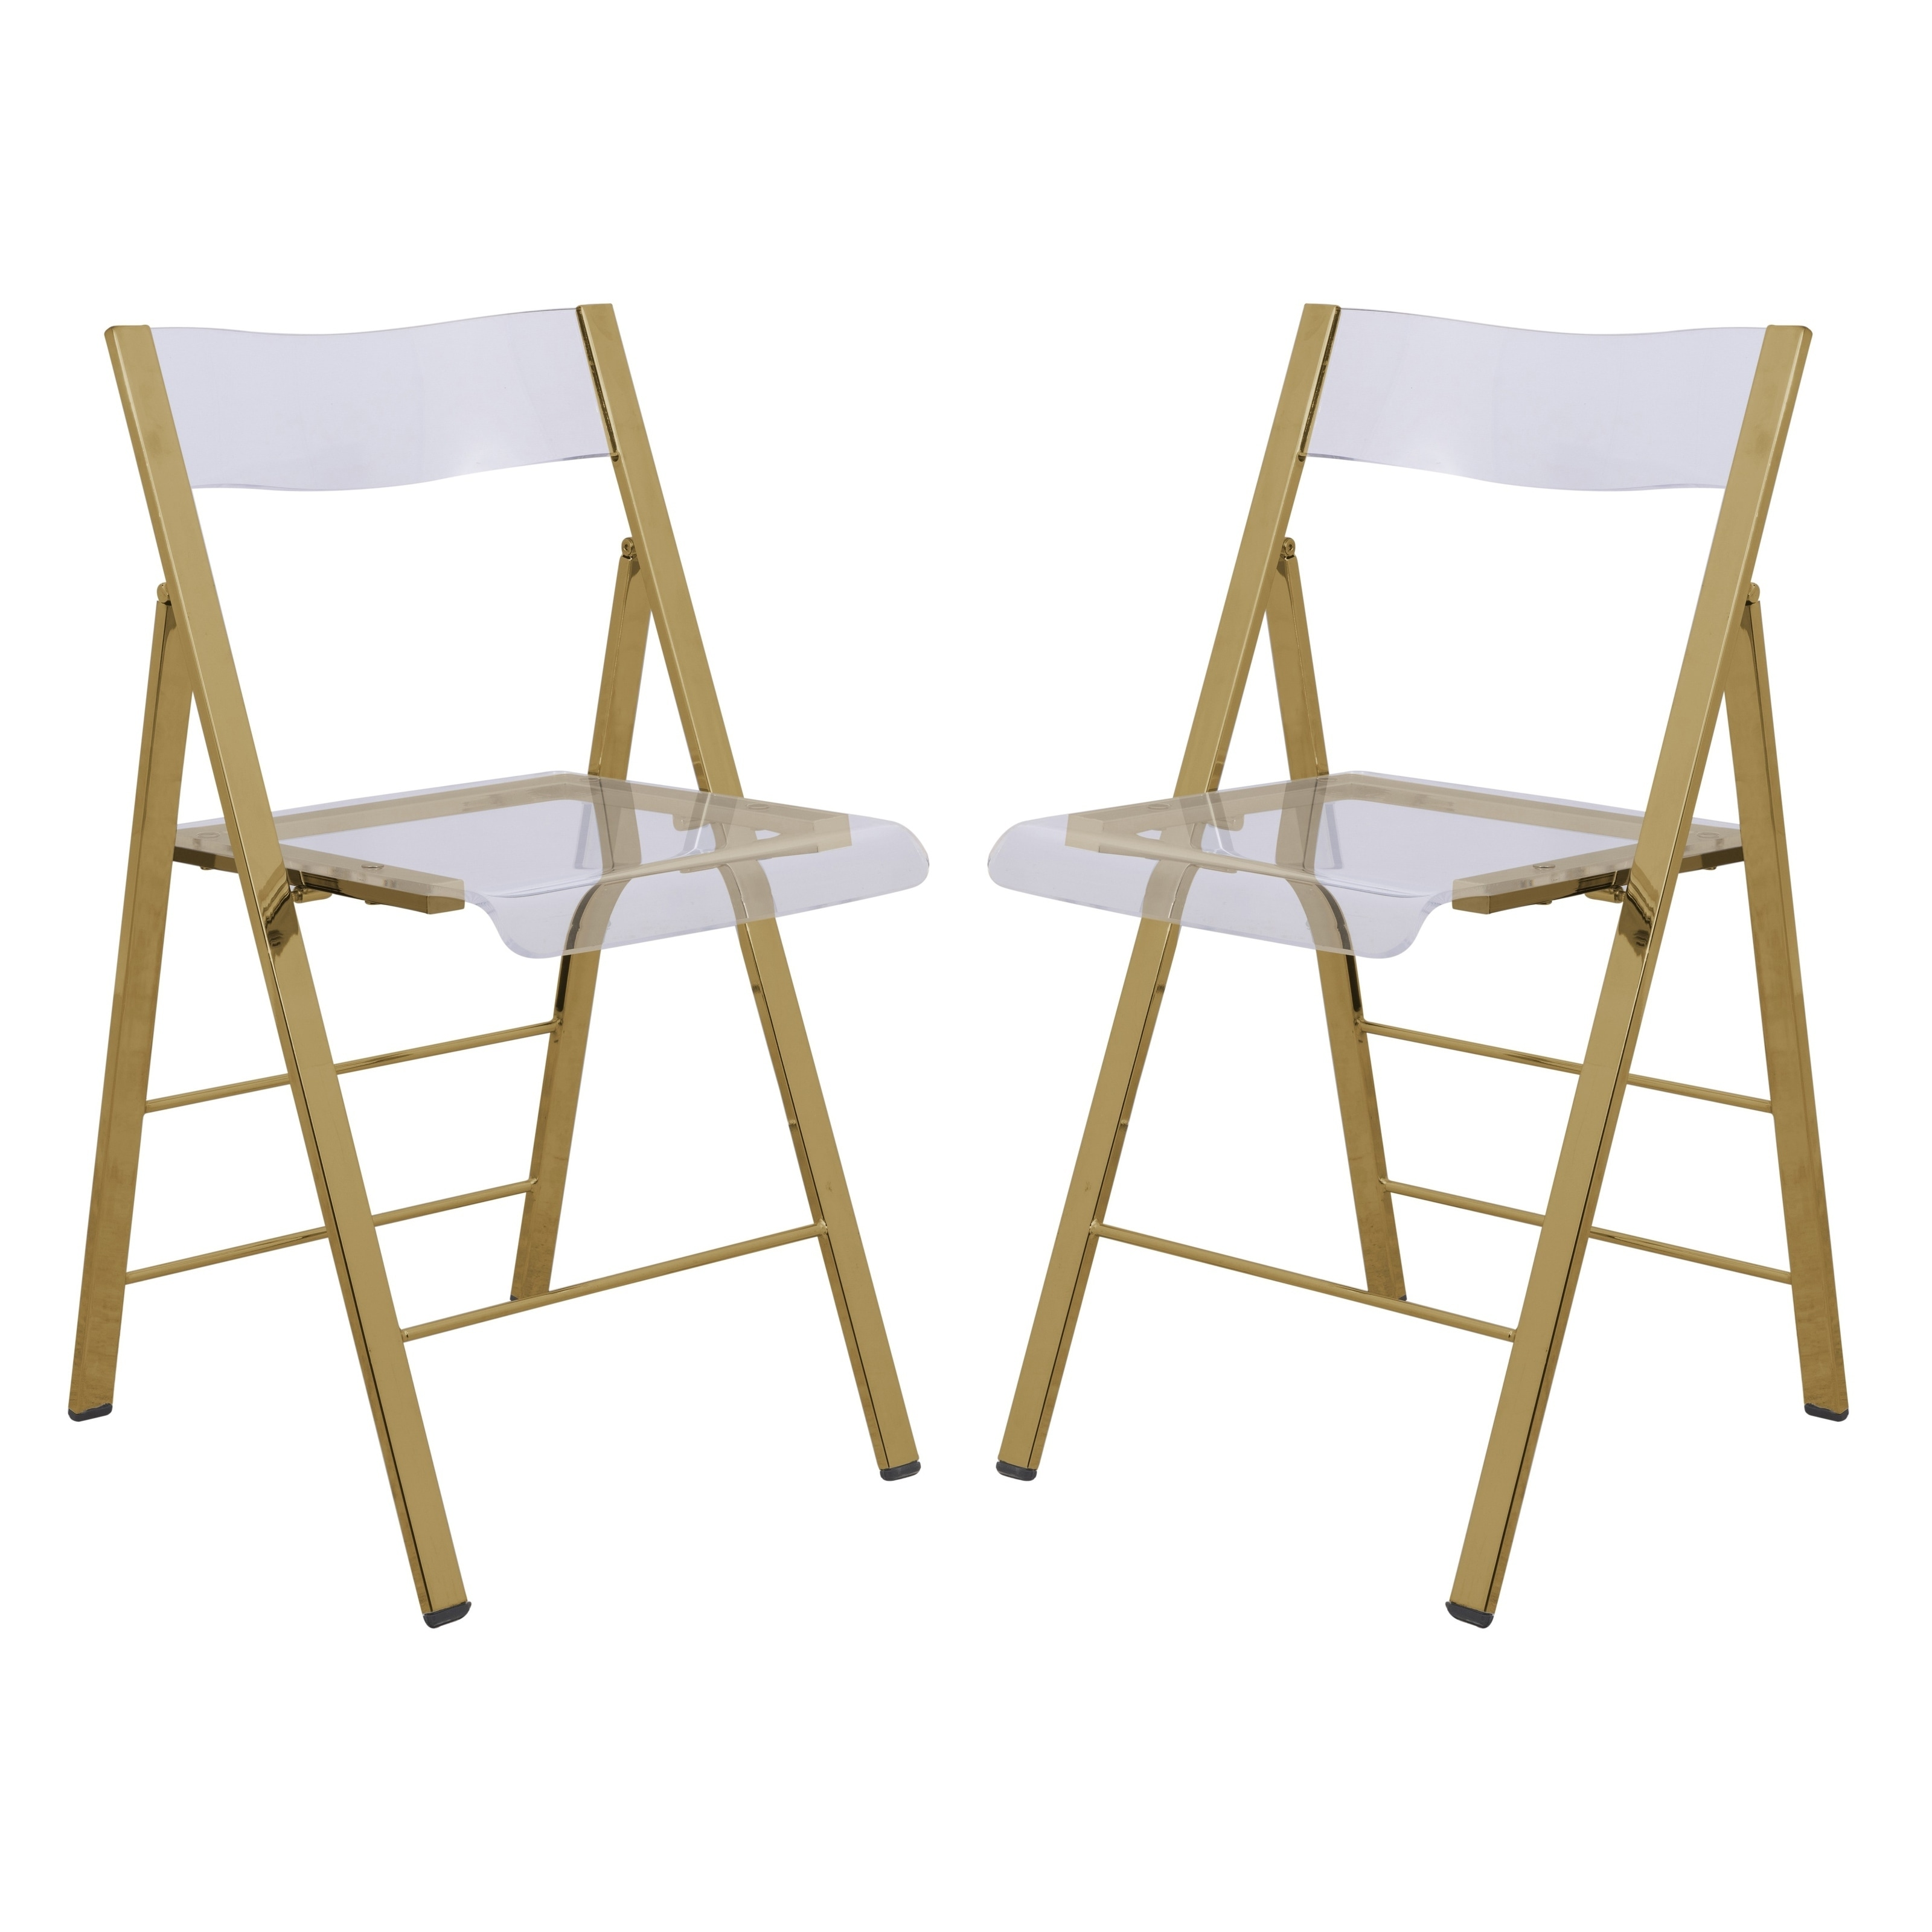 Foldable Dining Chairs Leisuremod Menno Clear Gold Chrome Frame Folding Dining Chair Set Of 2